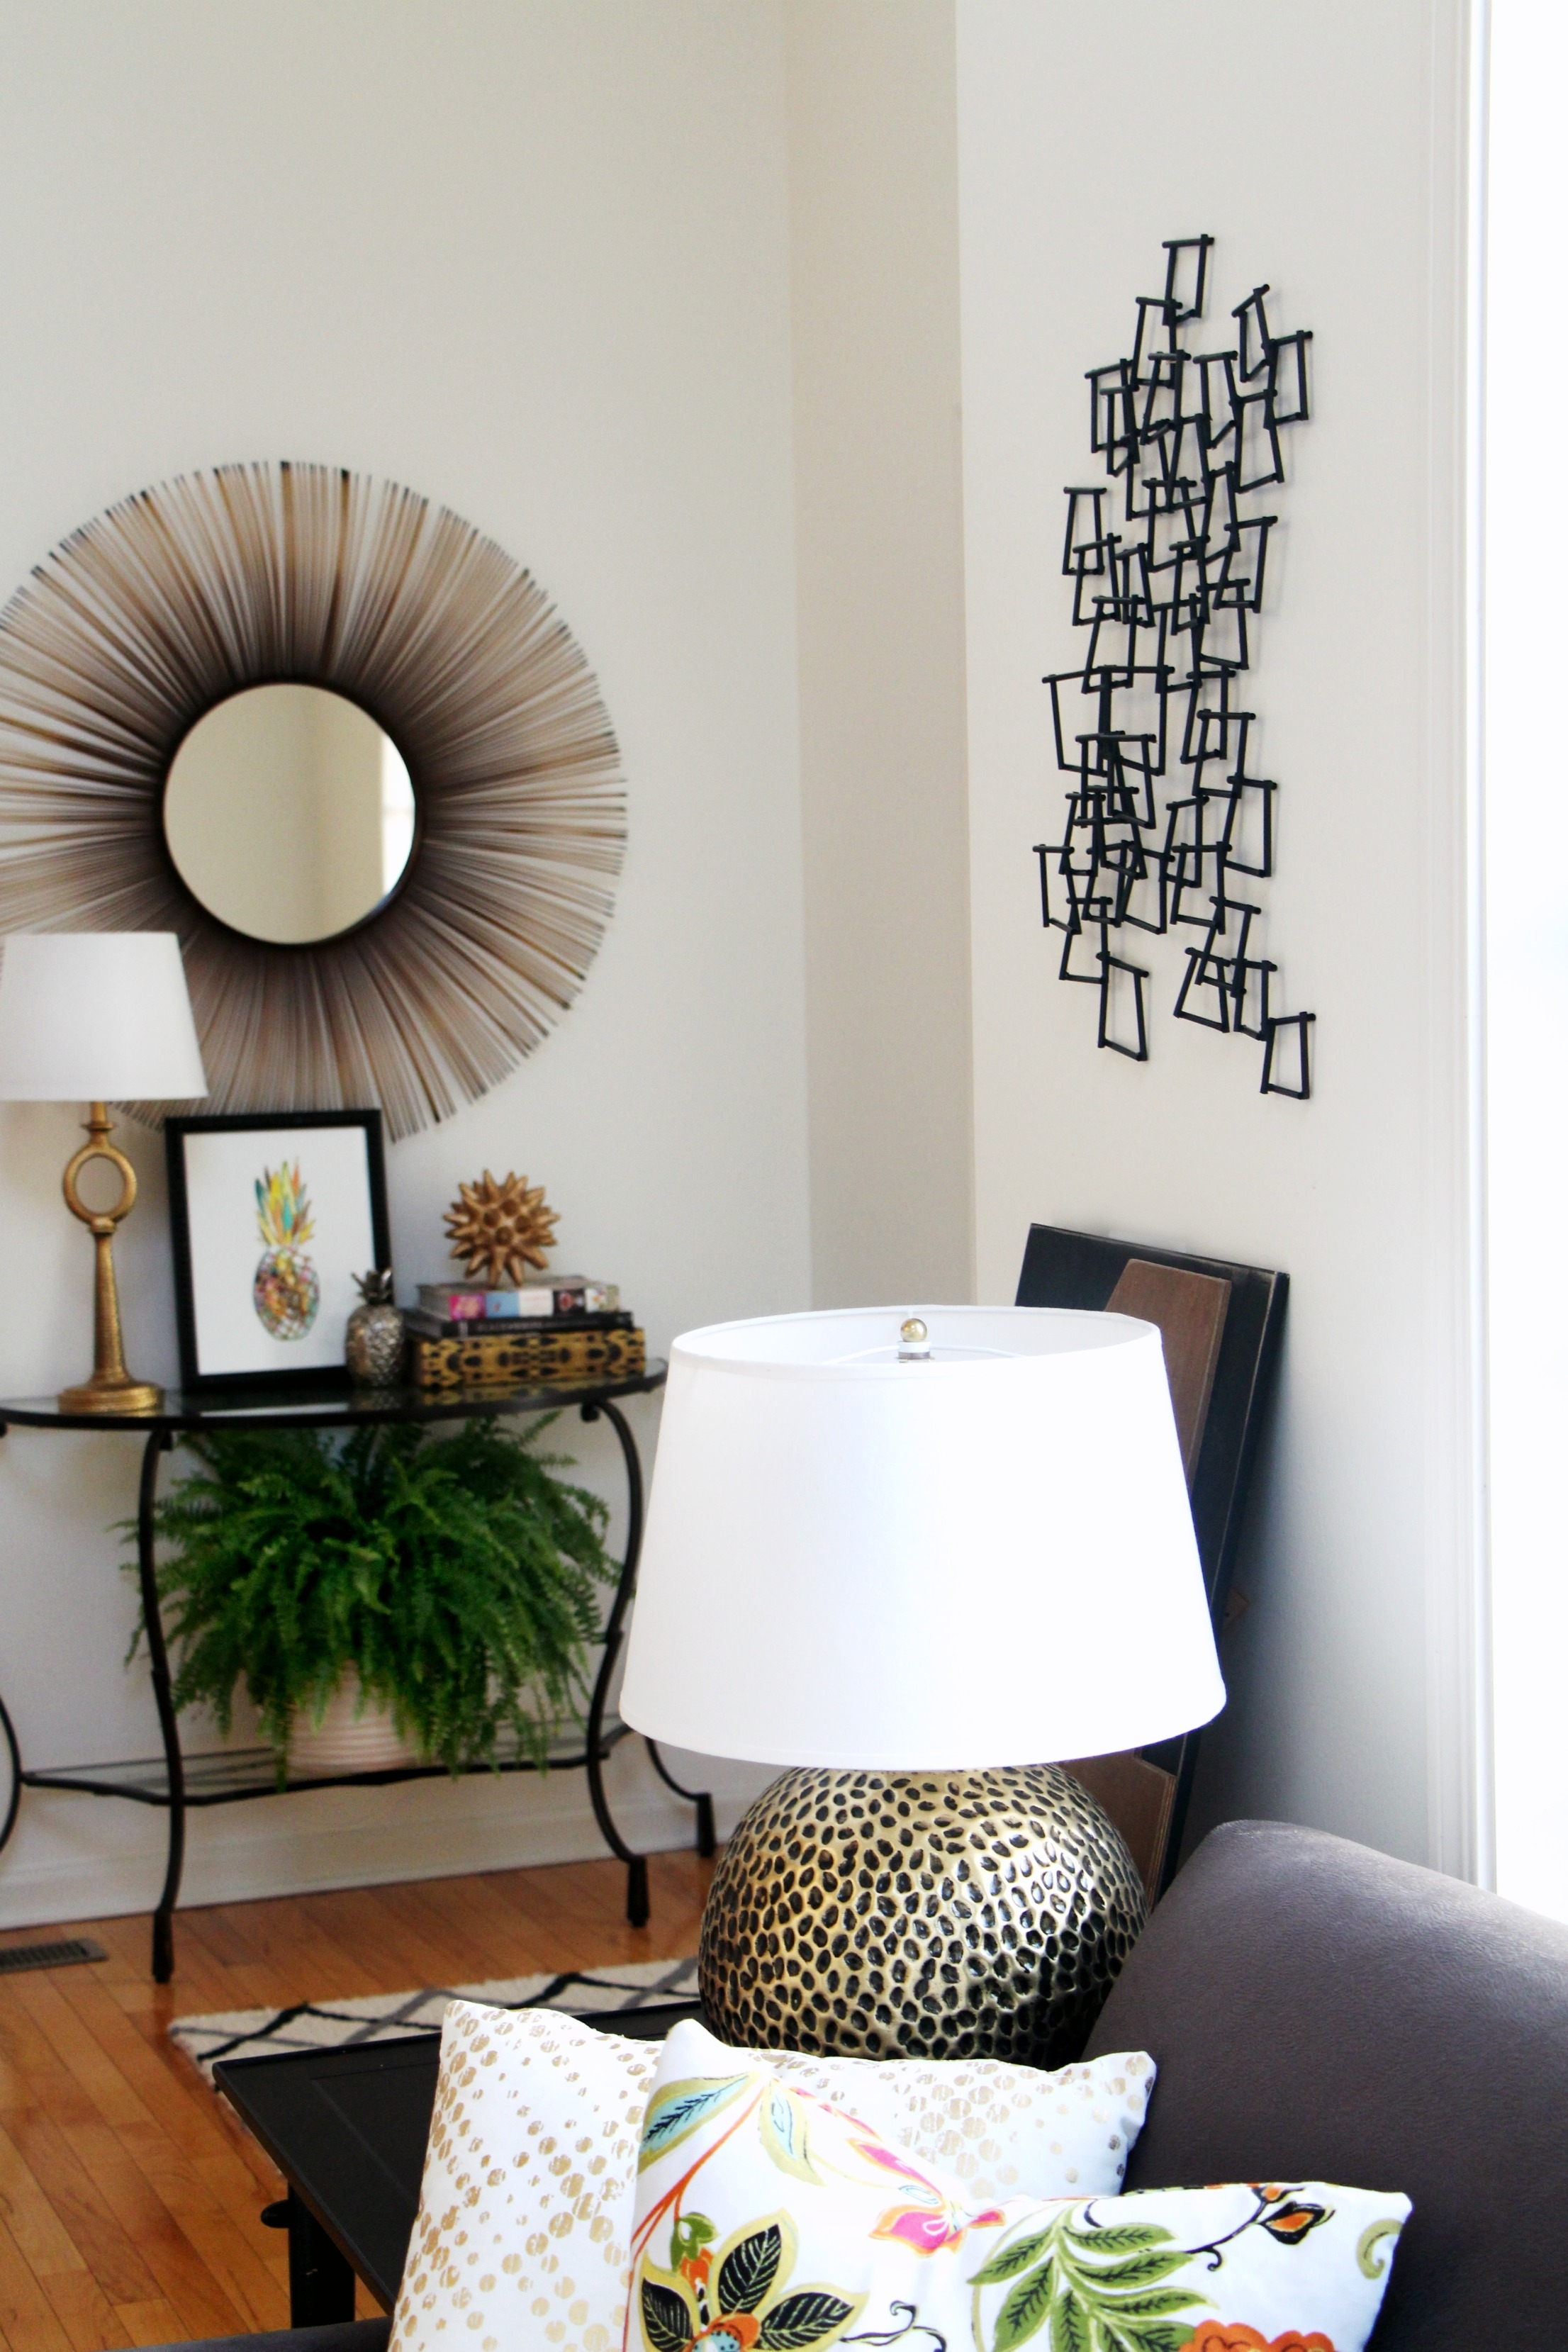 Diy Pottery Barn Inspired 3D Wall Art | This Is Our Bliss intended for Pottery Barn Wall Art (Image 6 of 20)